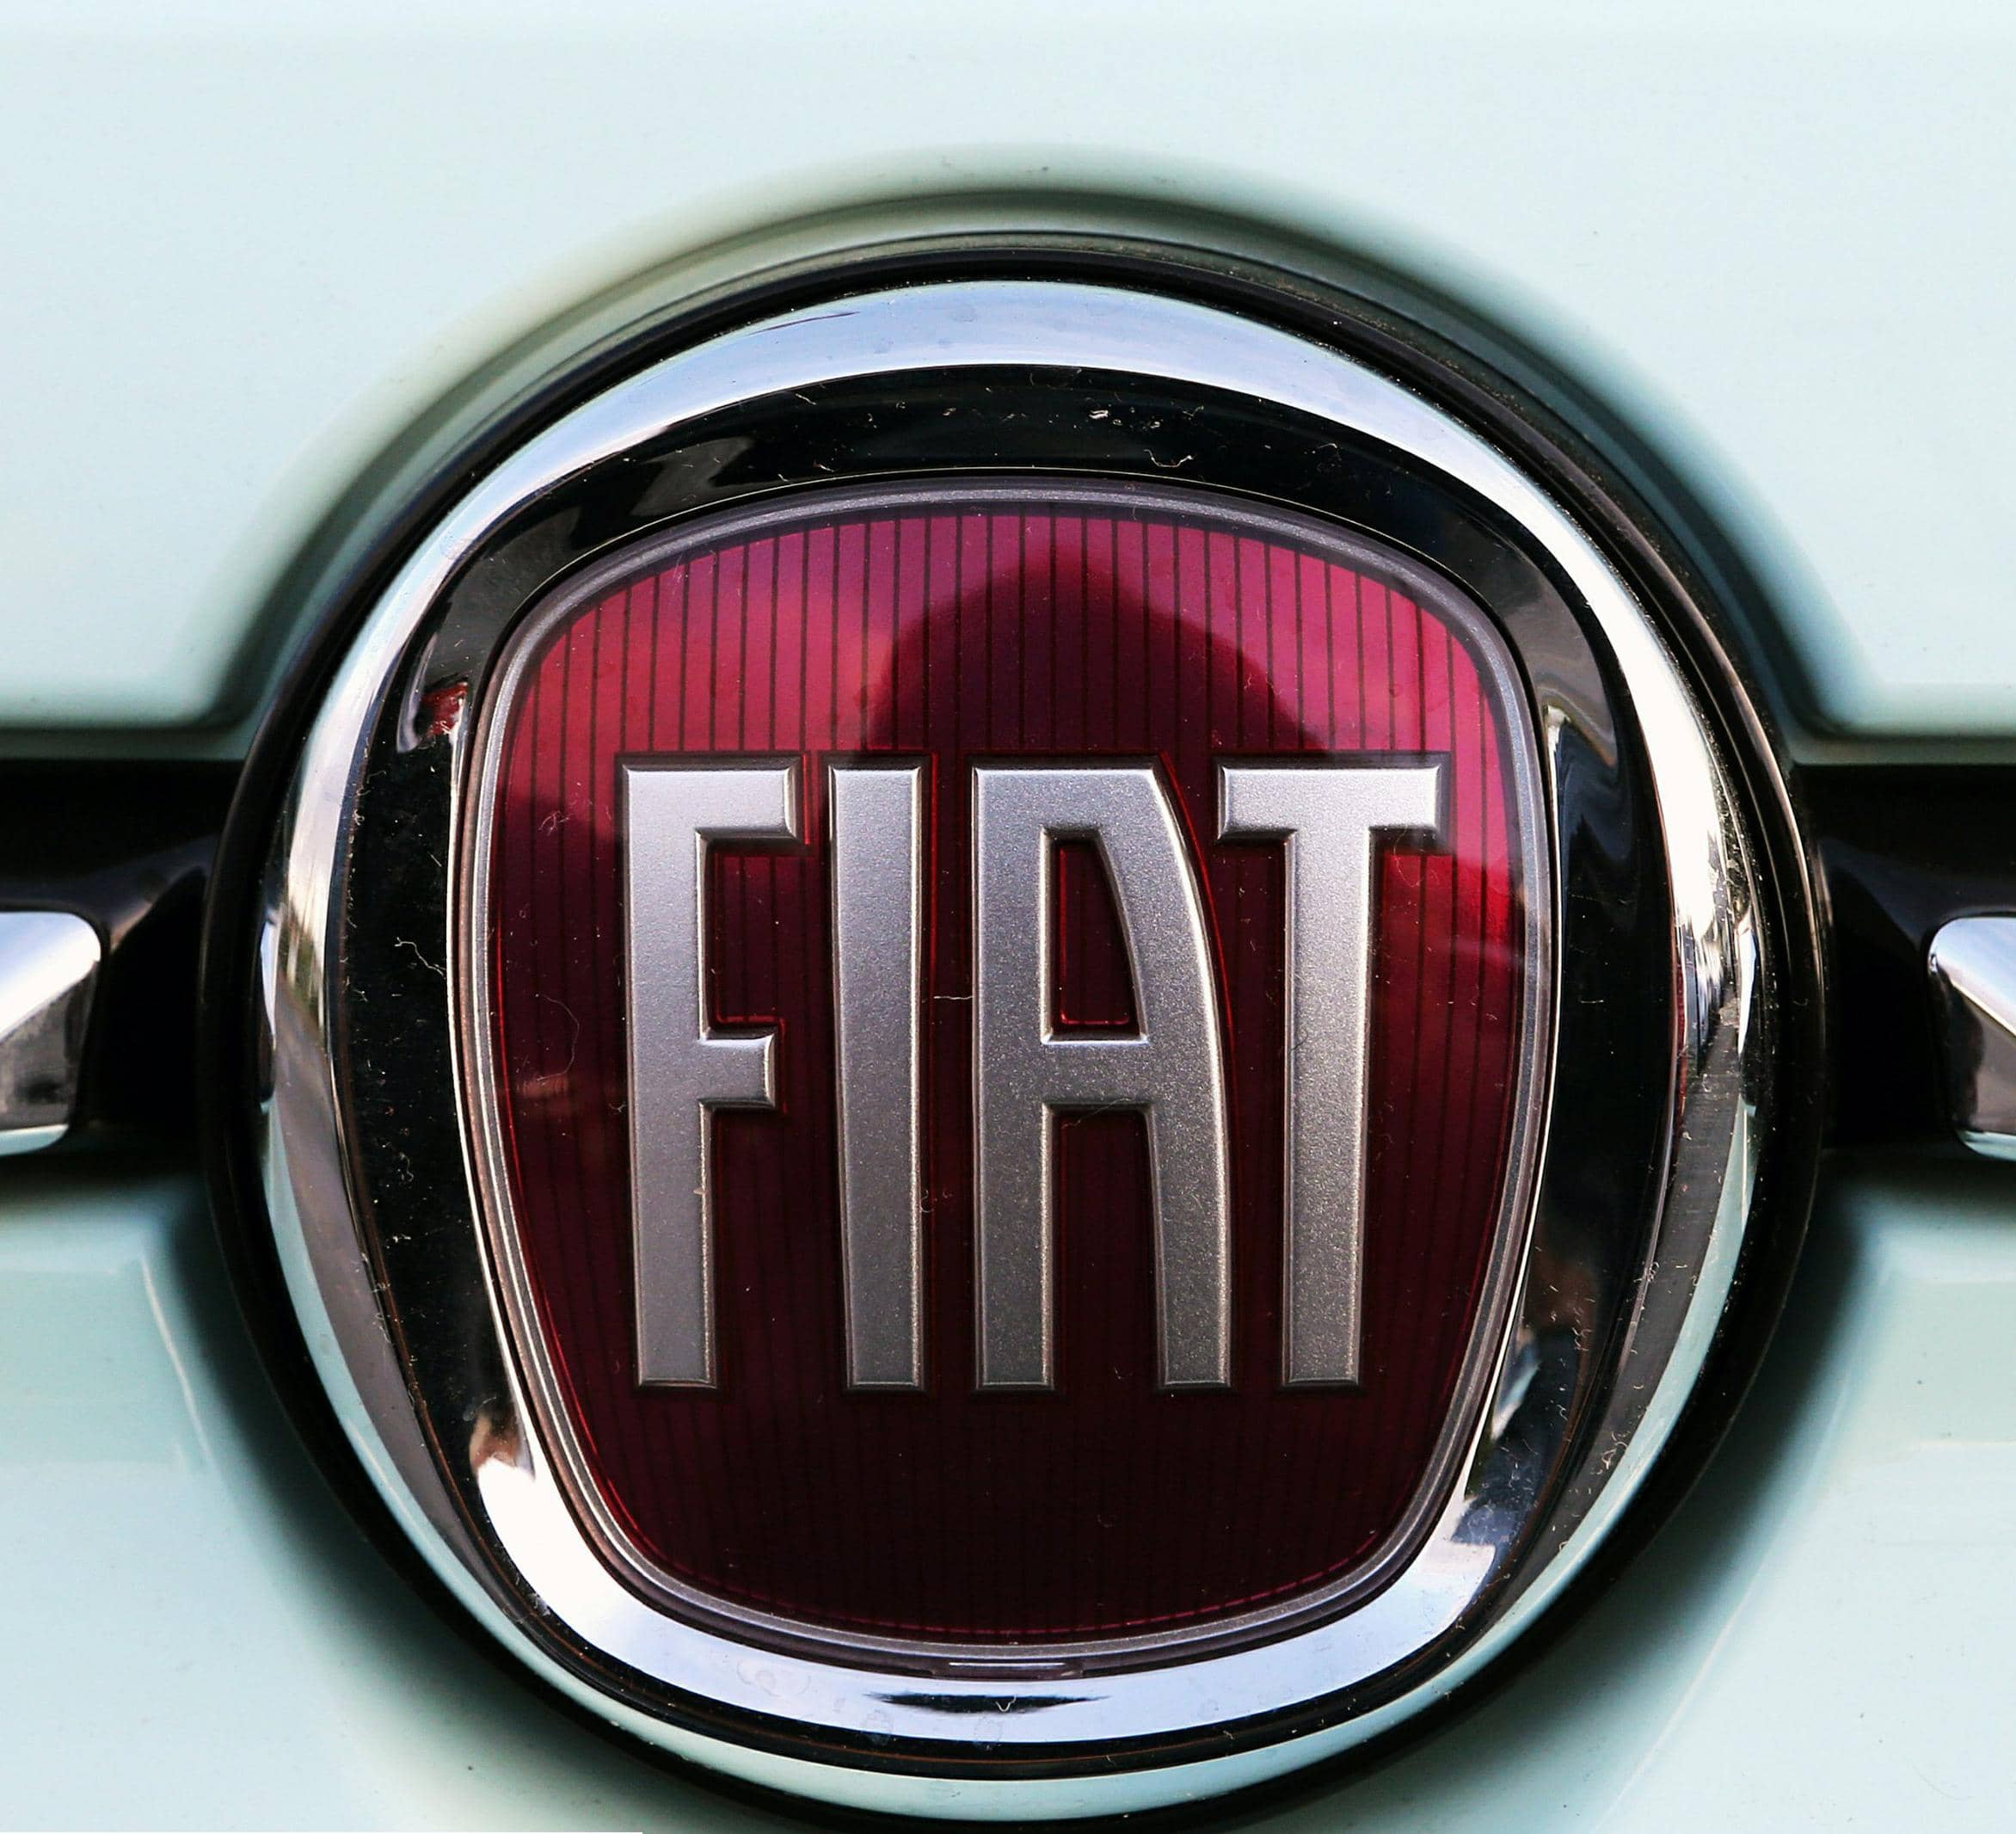 FIAT CHRYSLER IN TALKS WITH FOXCONN TO DEVELOP ELECTRIC CARS